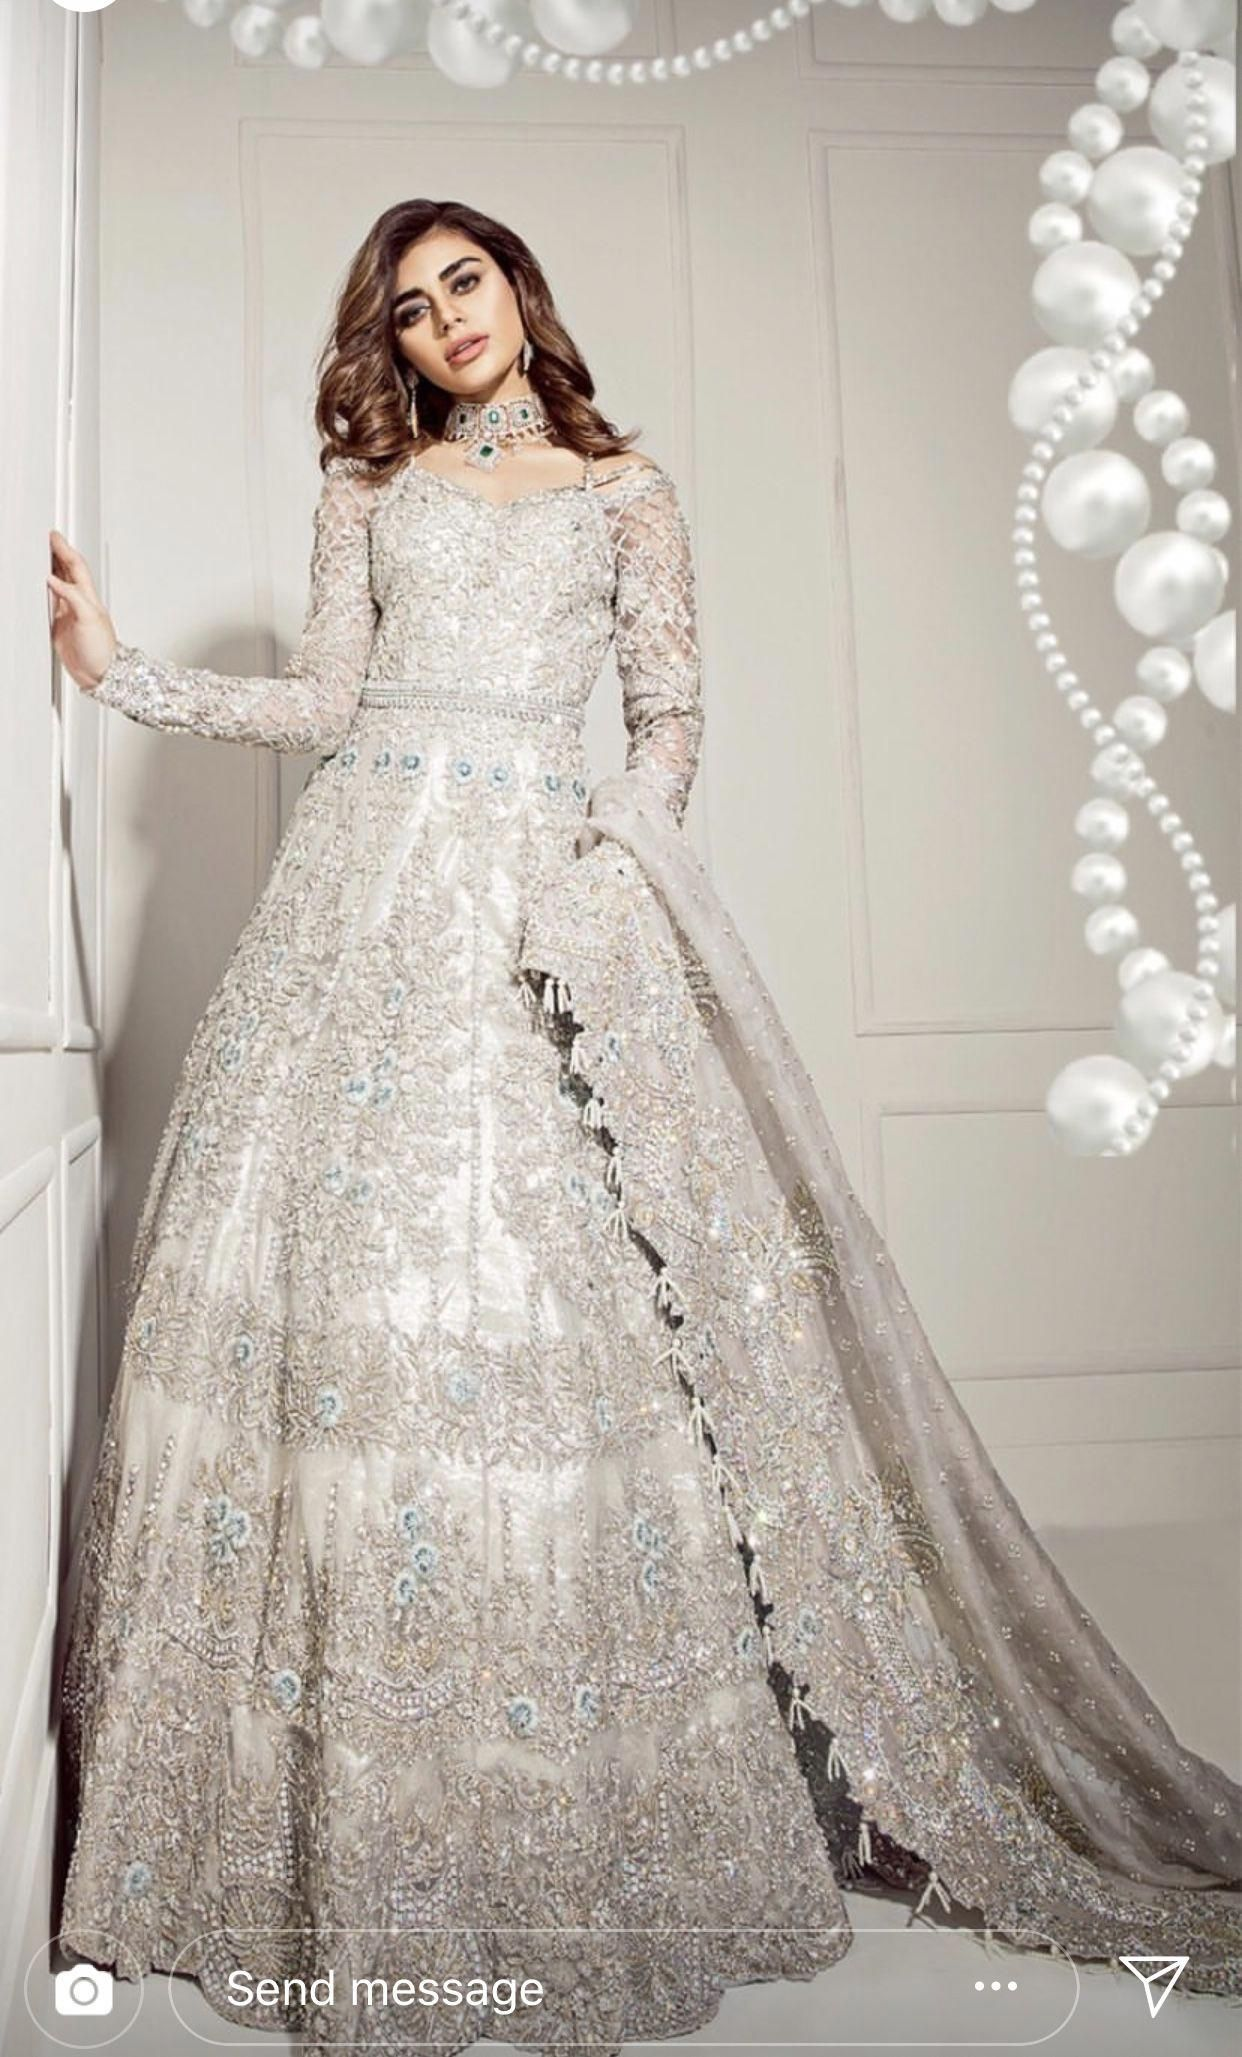 Pakistani Wedding Pakistani Fashion Ivory Wedding Dress Asian Bridal Dresses Indian Bridal Dress Pakistani Wedding Dresses